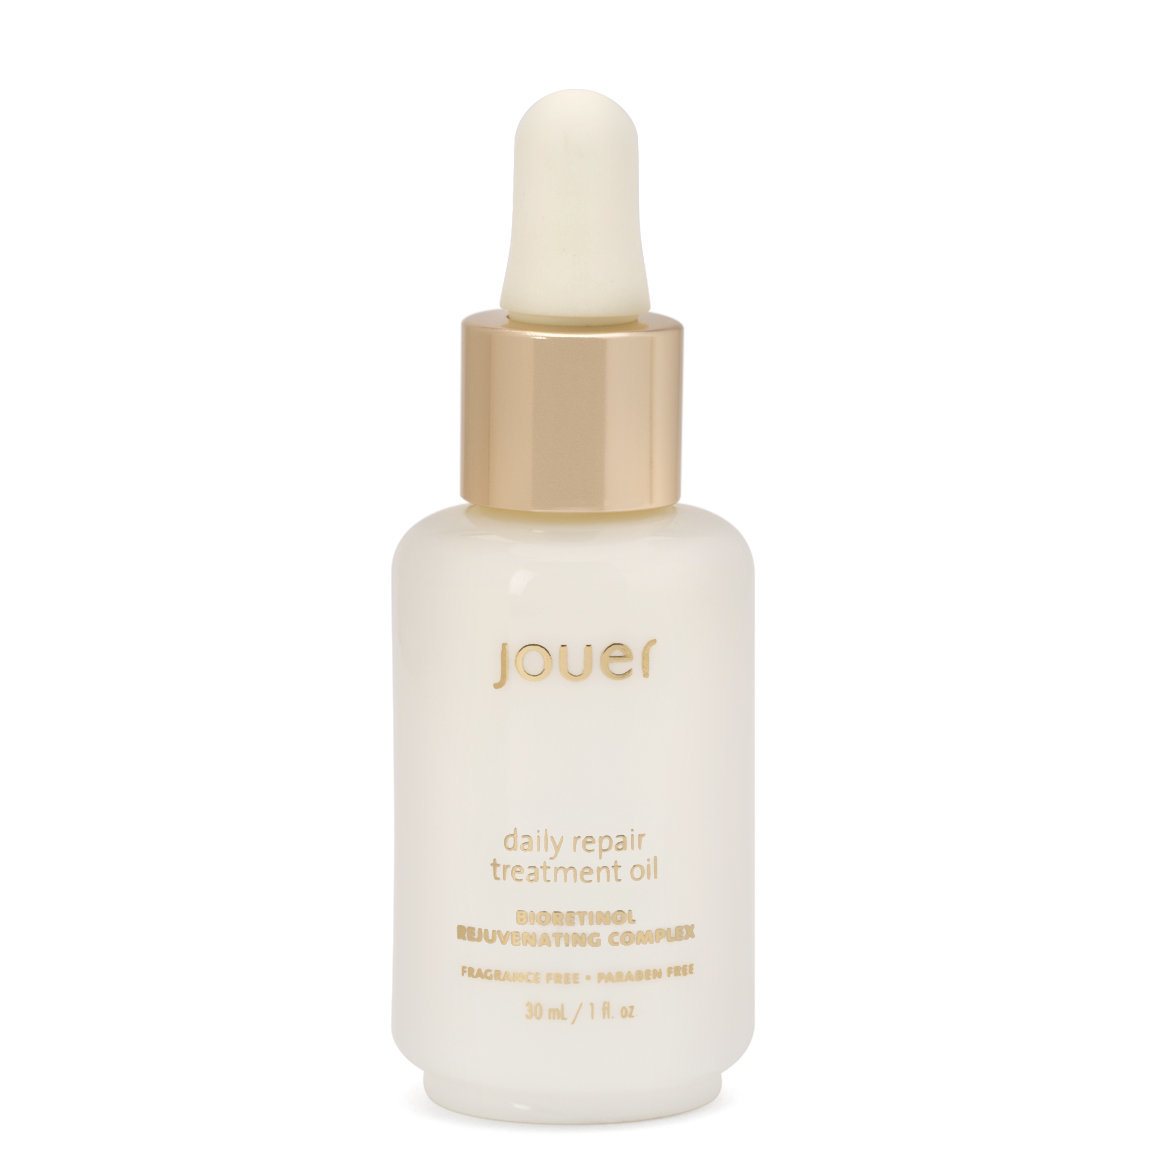 Jouer Cosmetics Daily Repair Treatment Oil product swatch.